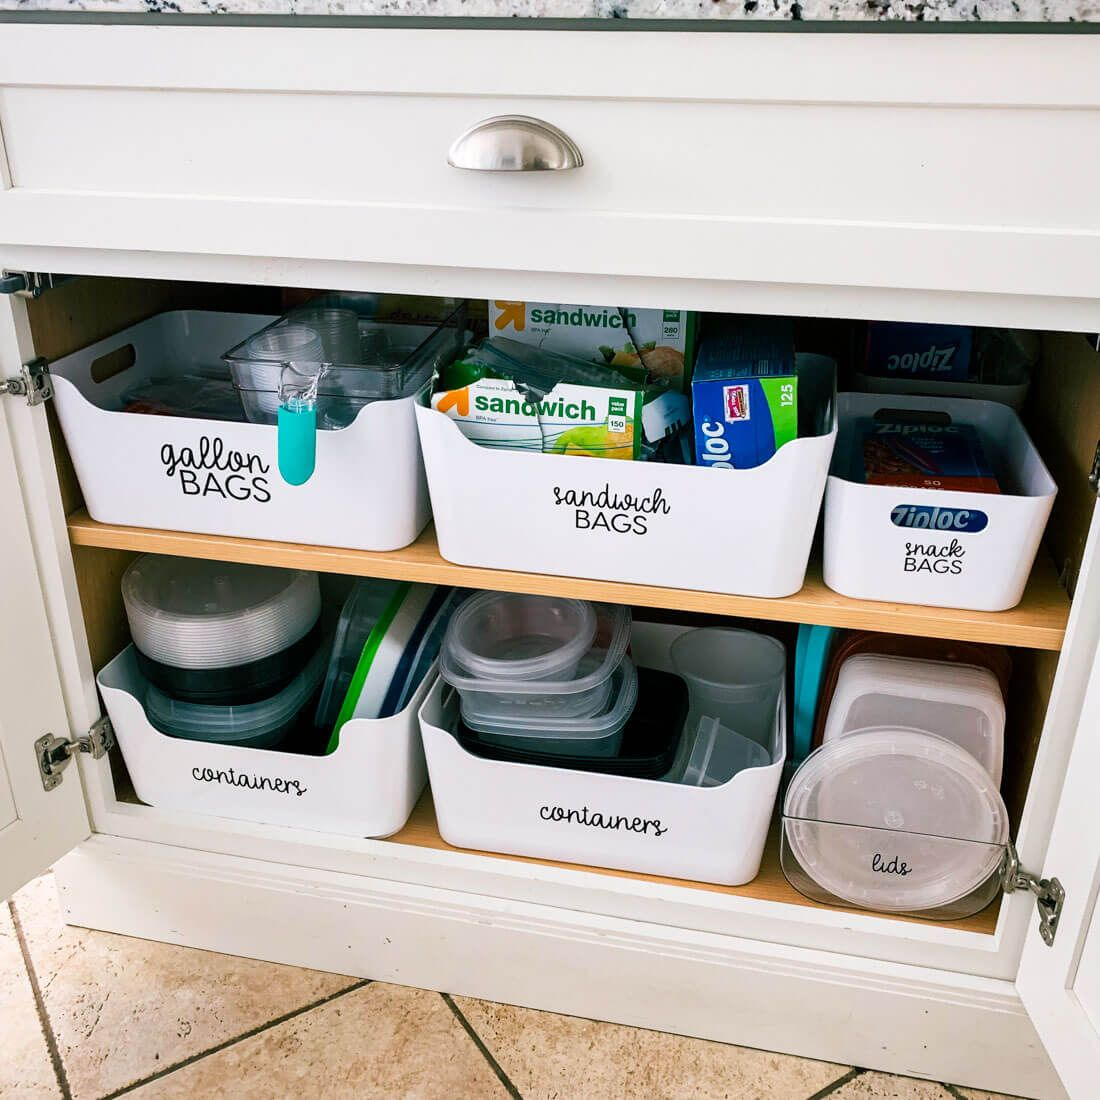 How to Organize Kitchen Cabinets #organizekitchen